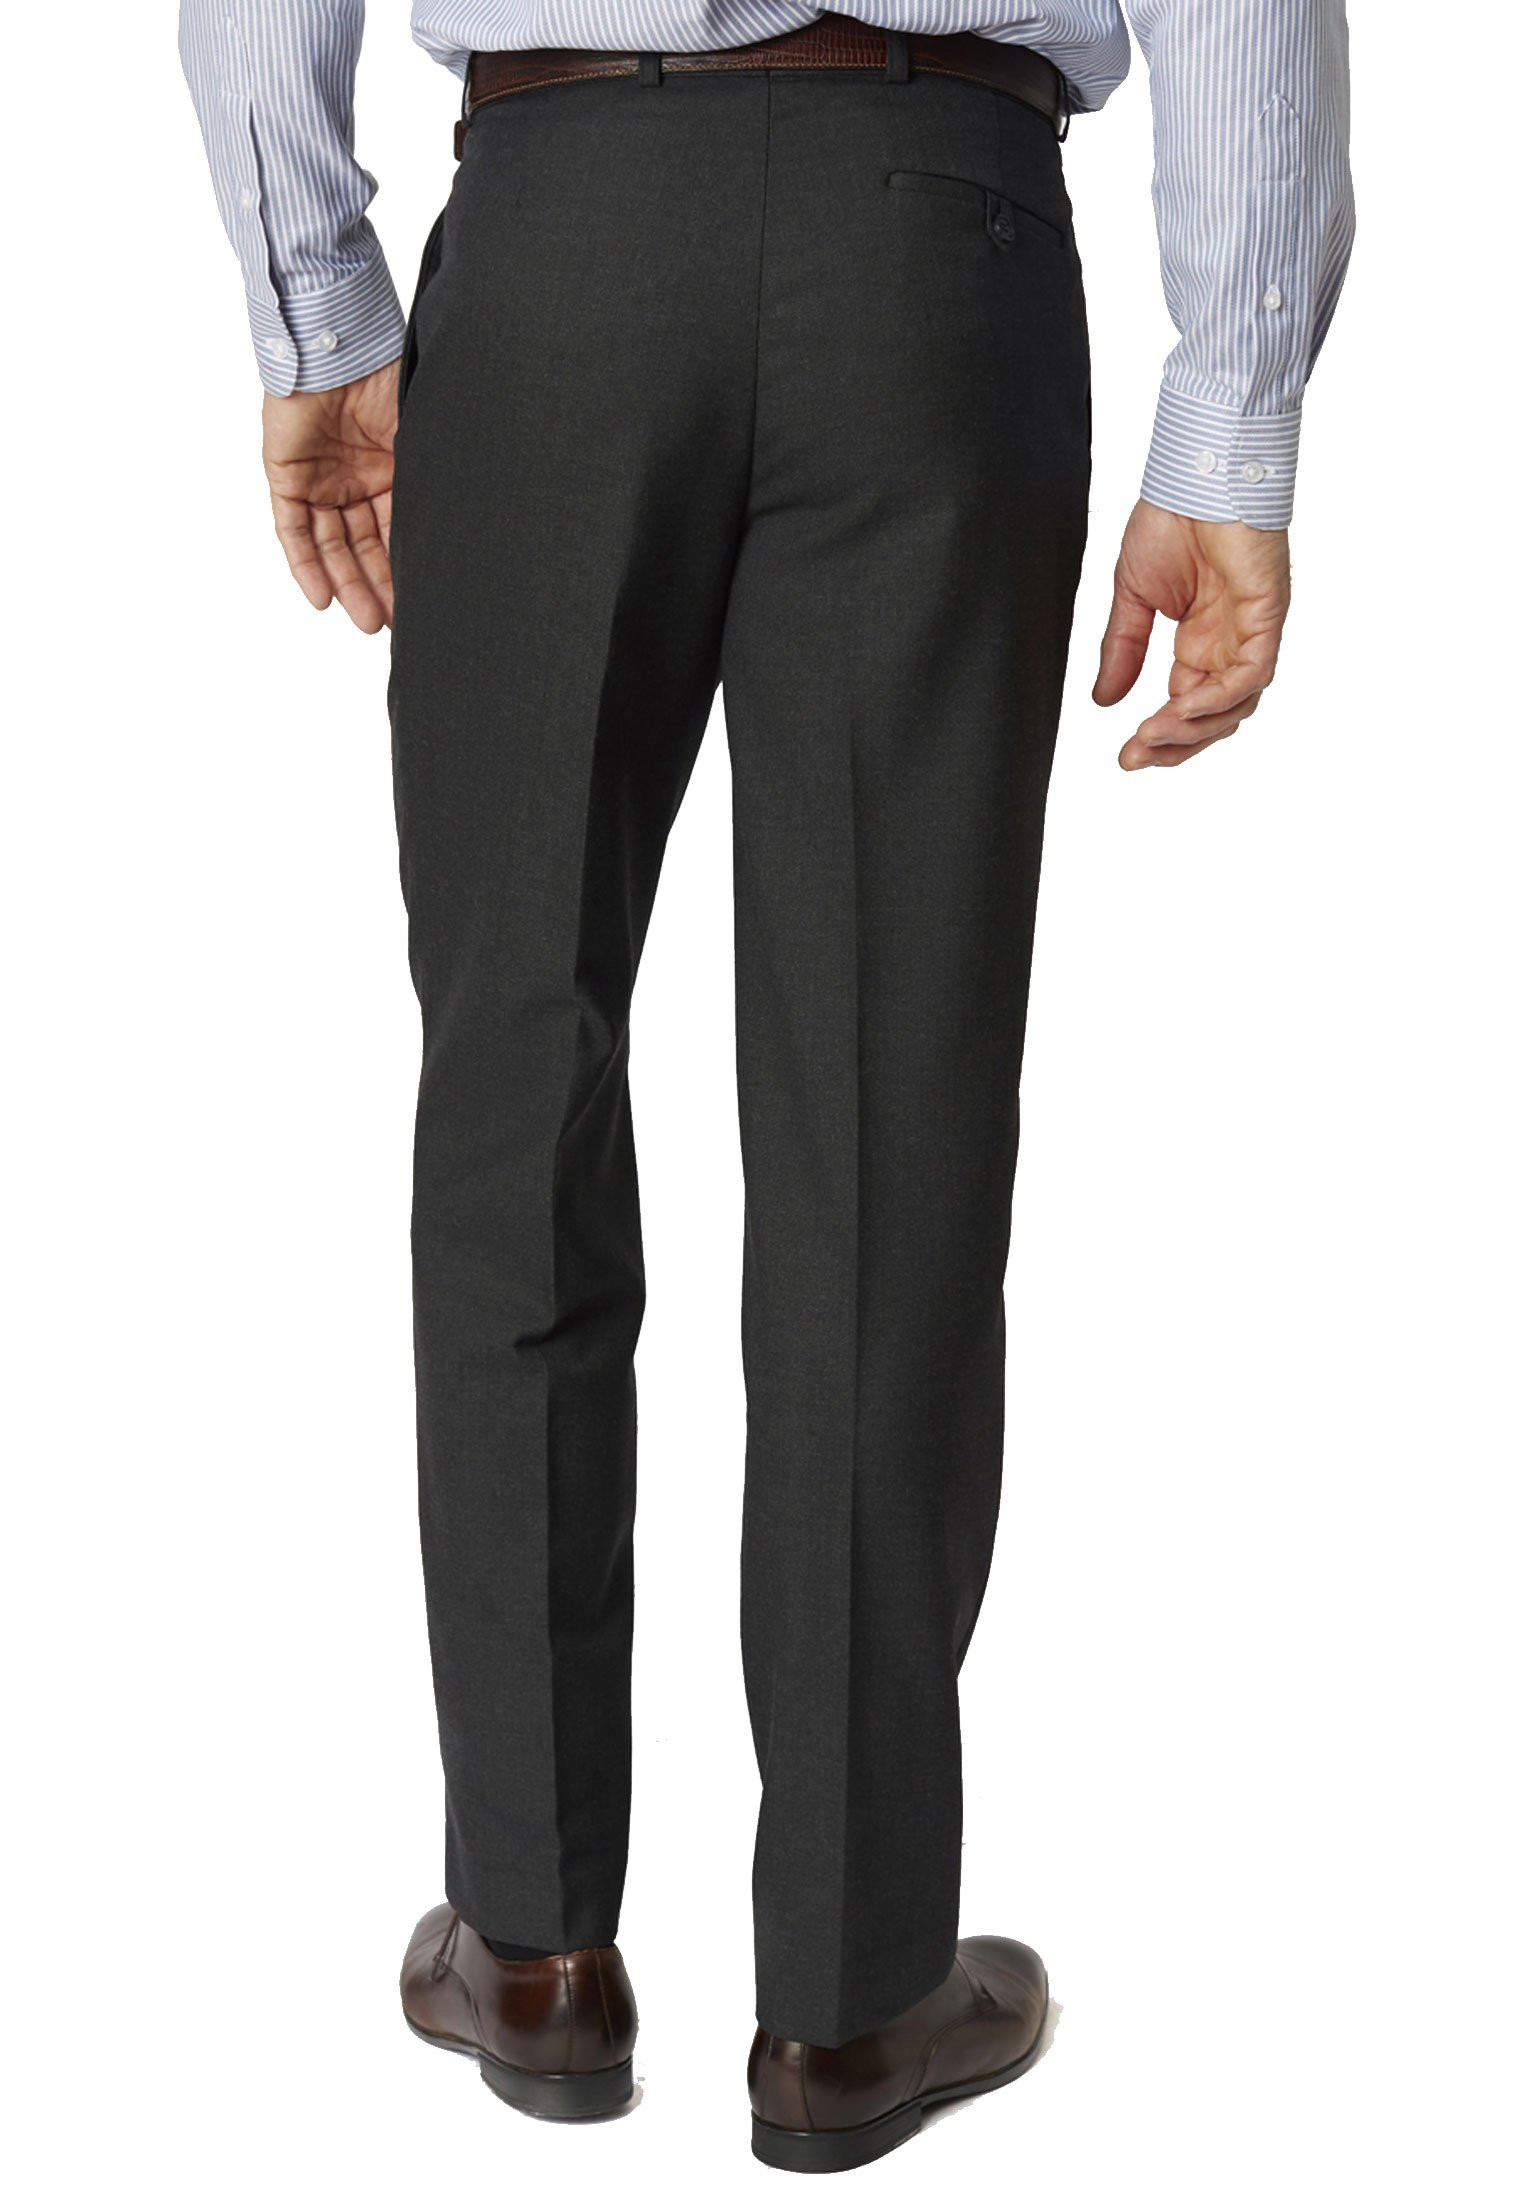 Charcoal Branmarket Classic Fit Wool Blend Trouser